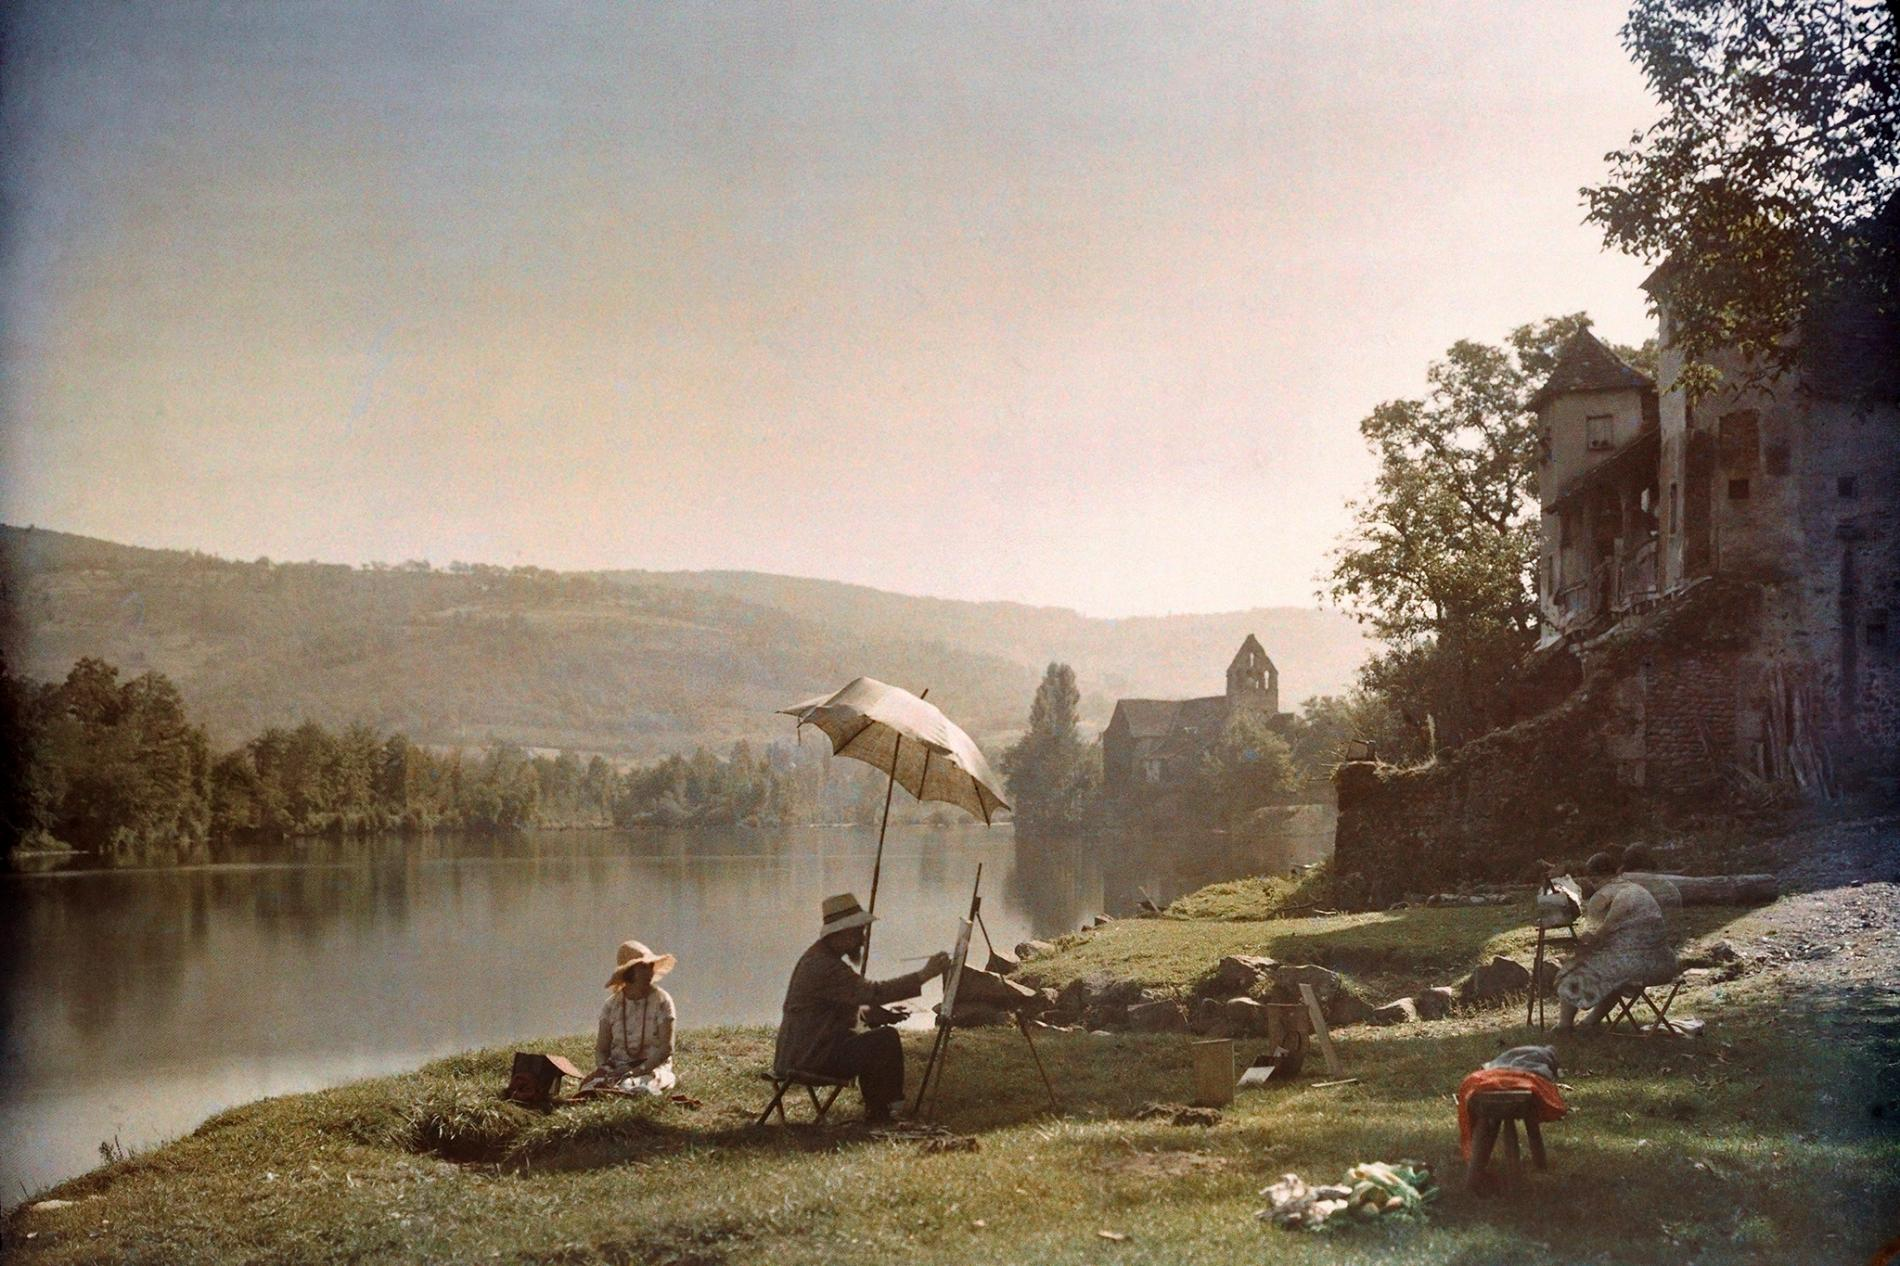 Artists paint on the banks of Dordogne River near Beaulieu, France, in 1925.